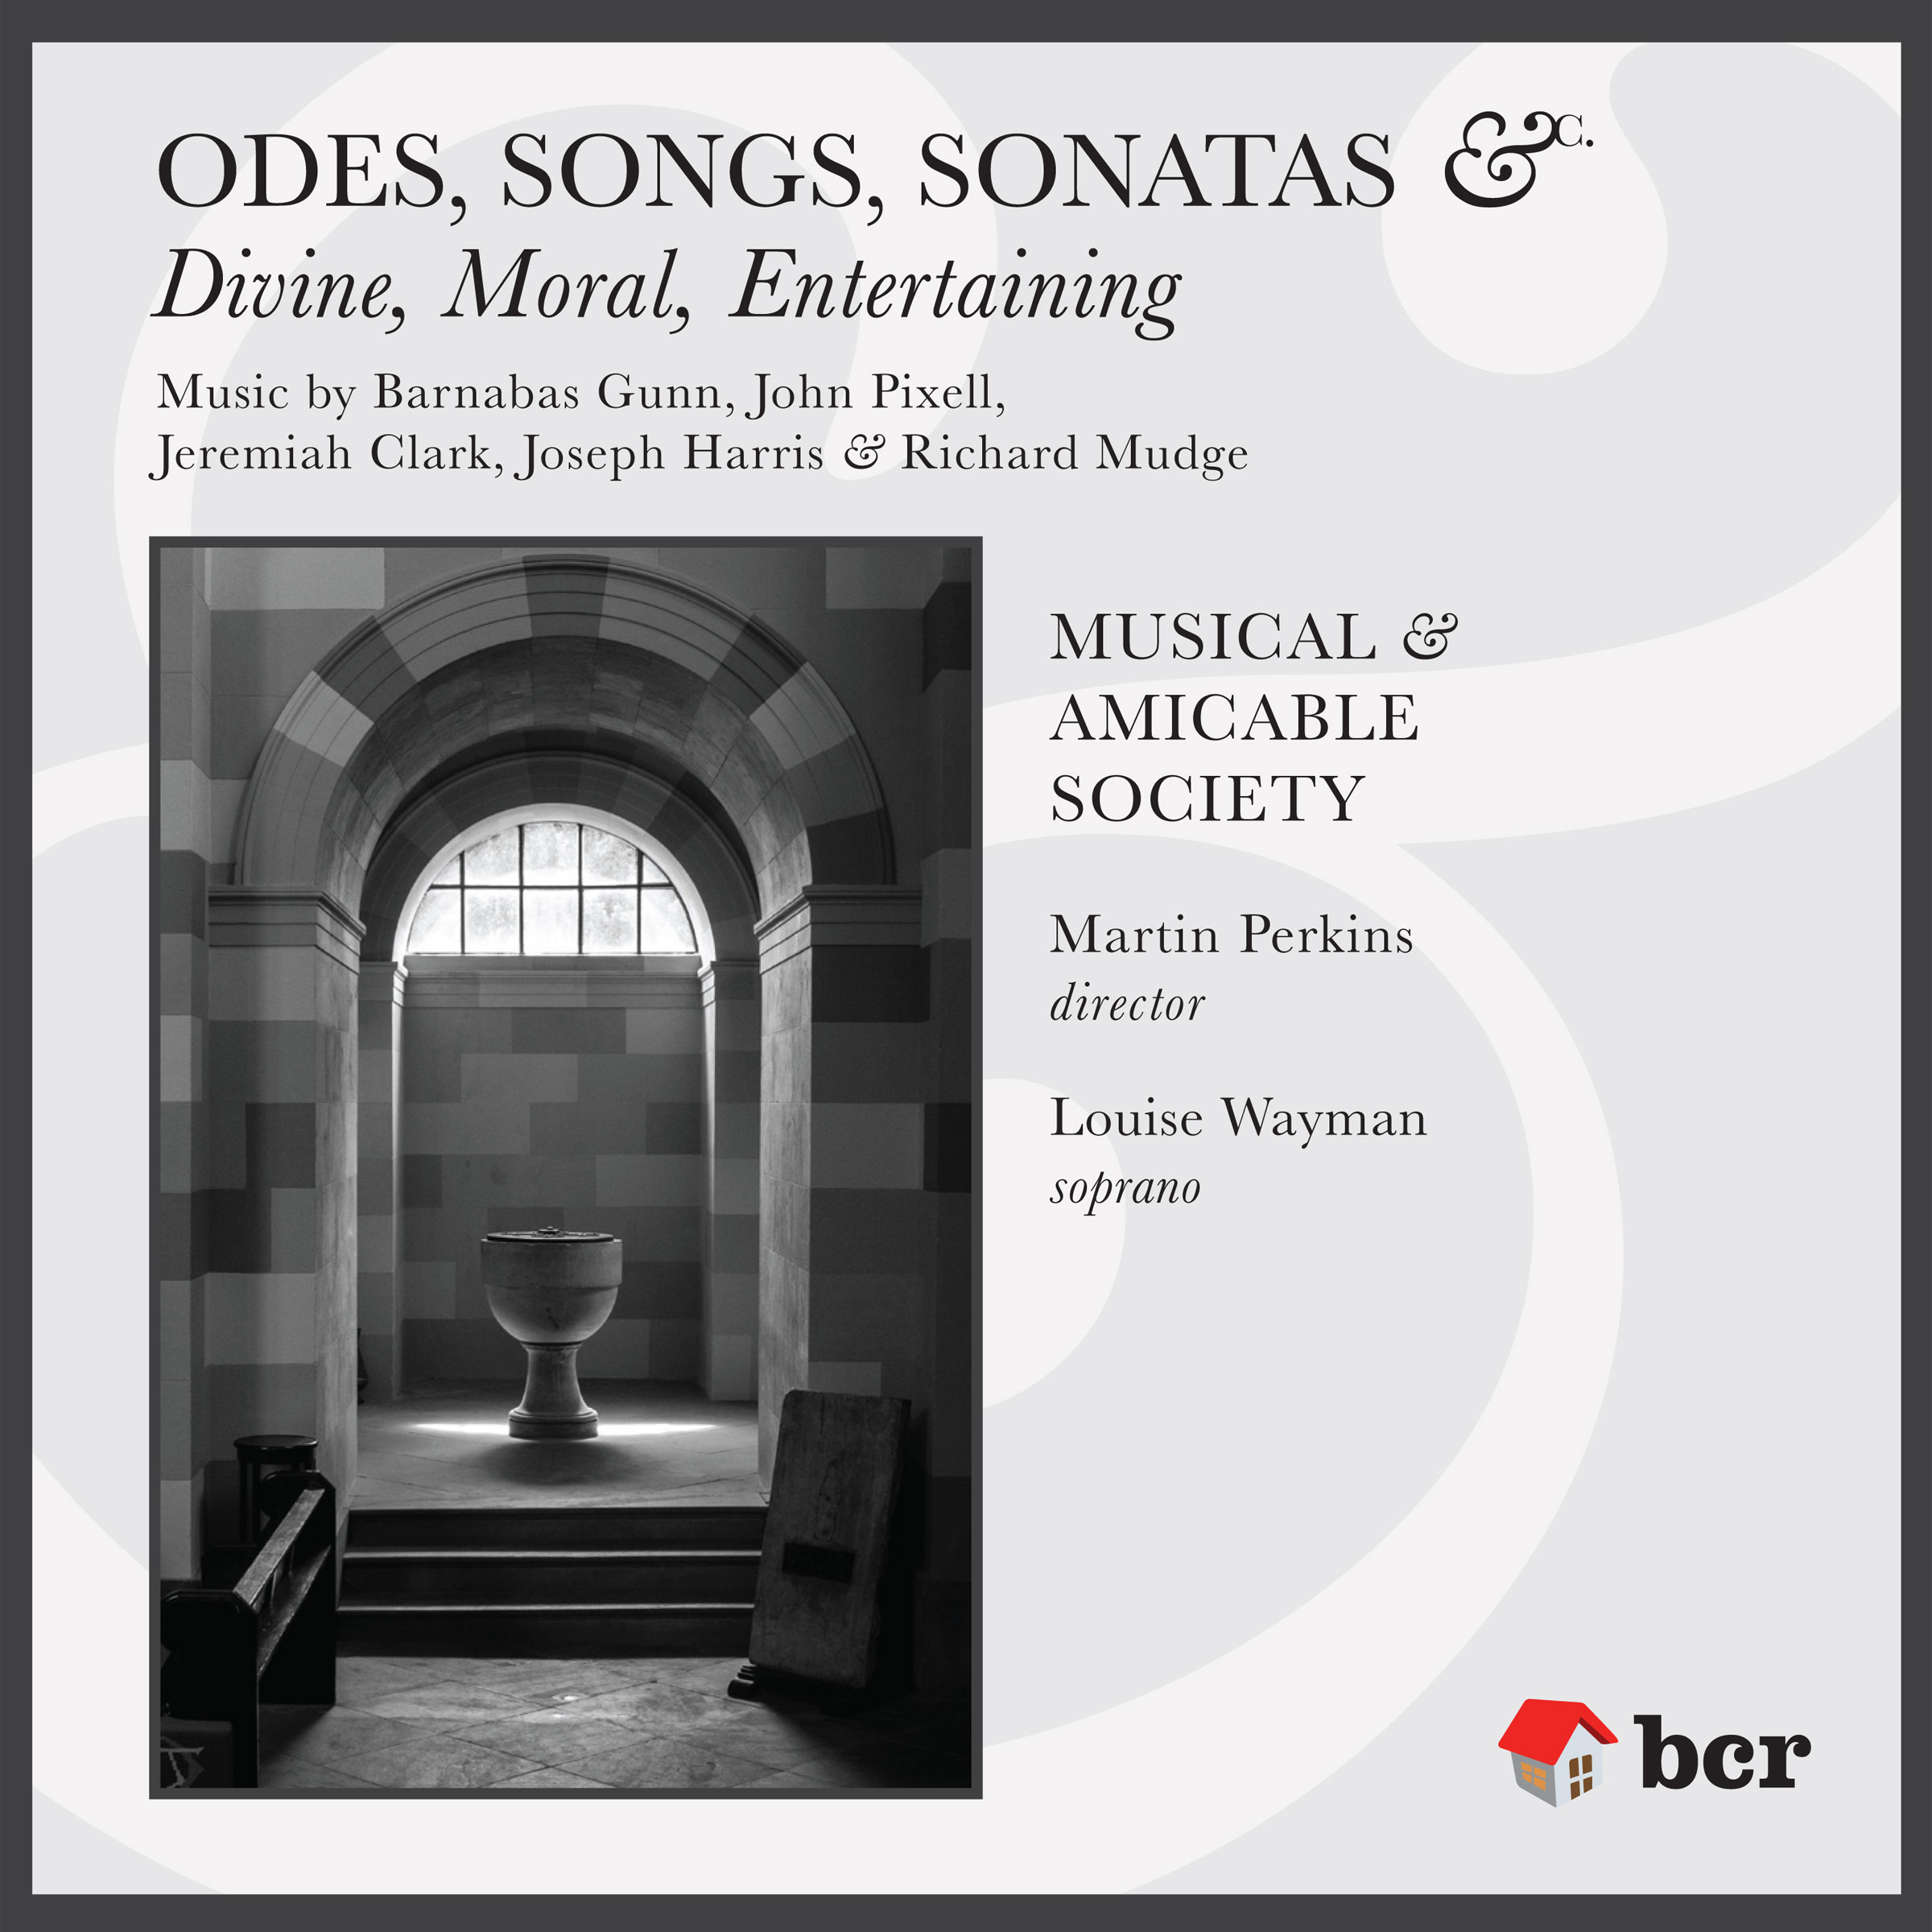 CD cover image of Odes, Songs, Sonatas etc